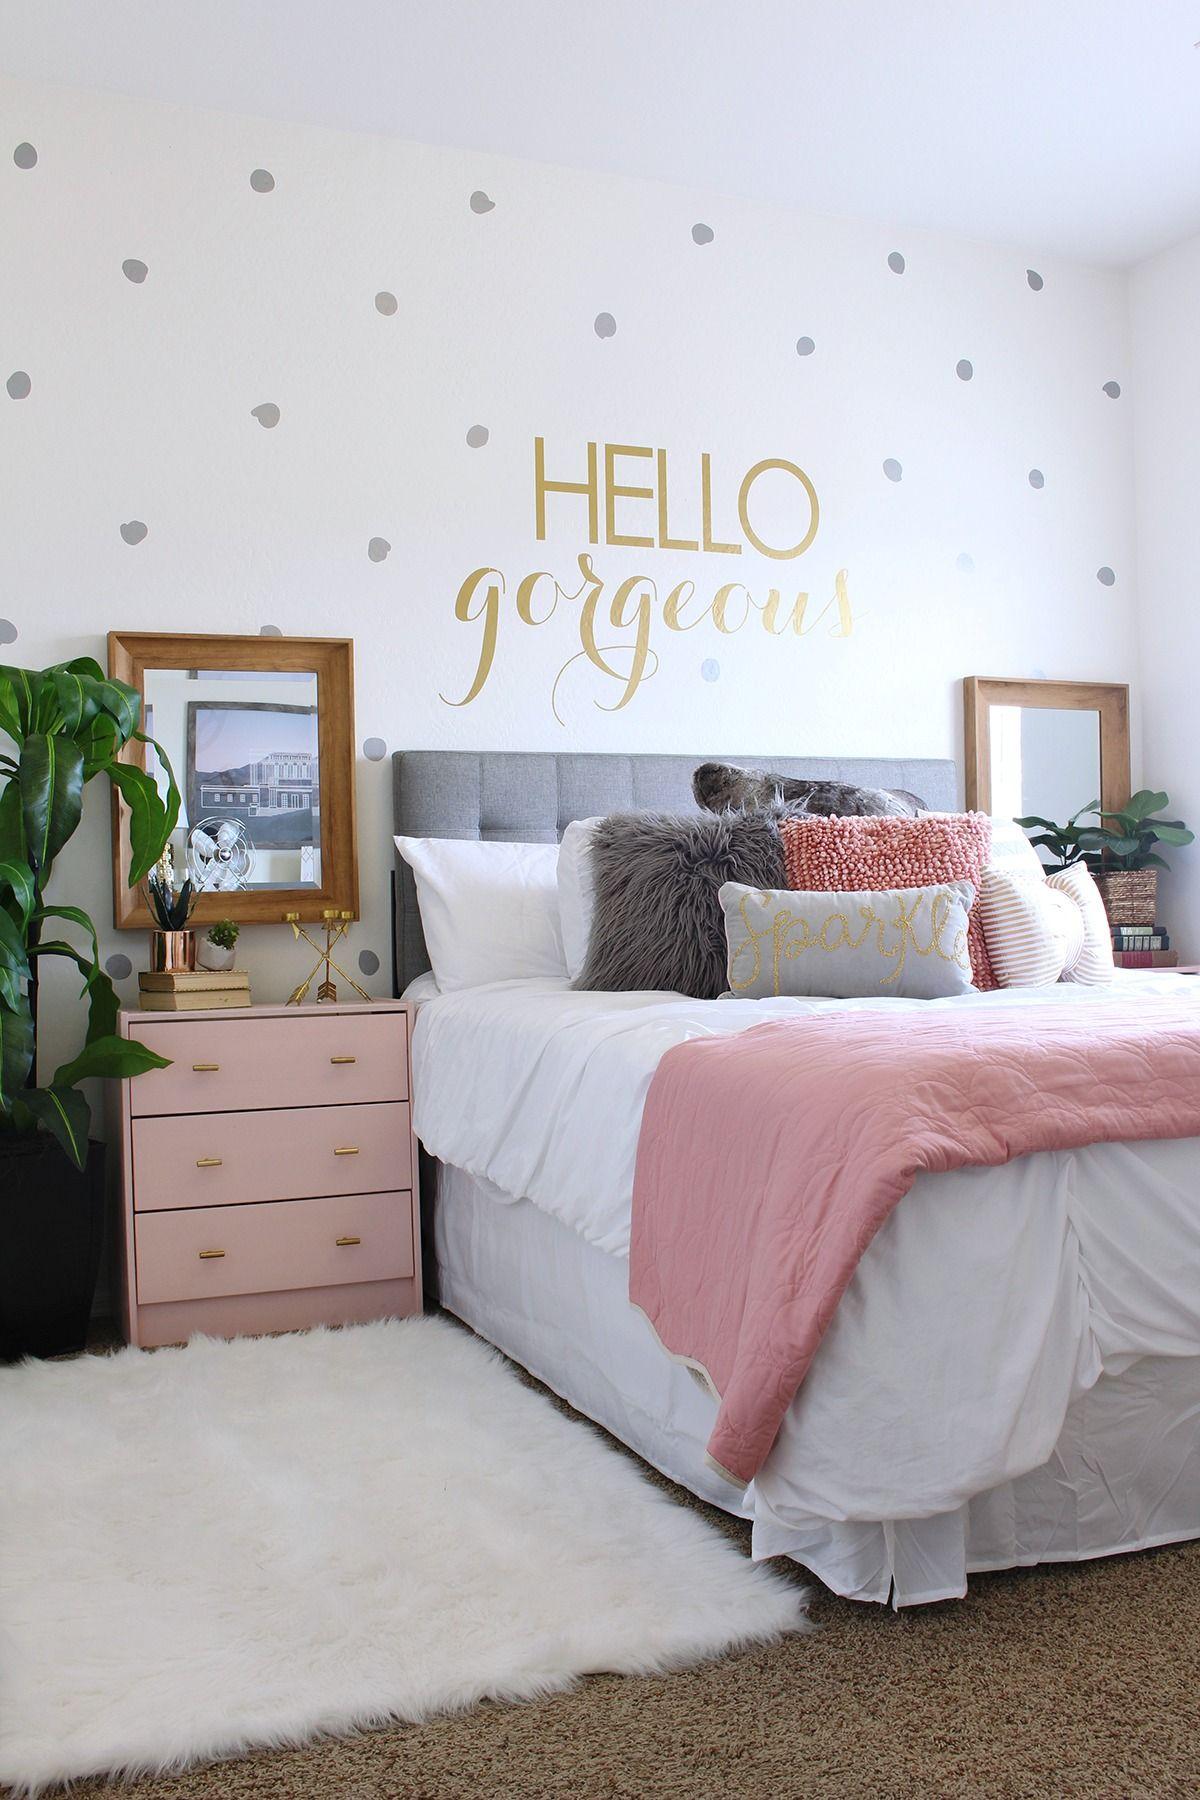 Teen Room Makeover Ideas   Www.classyclutter.net | Love The Combo Of Grey  And Blush Pink With The Metallic Gold! Those Pink Nightstands Are So Cute!